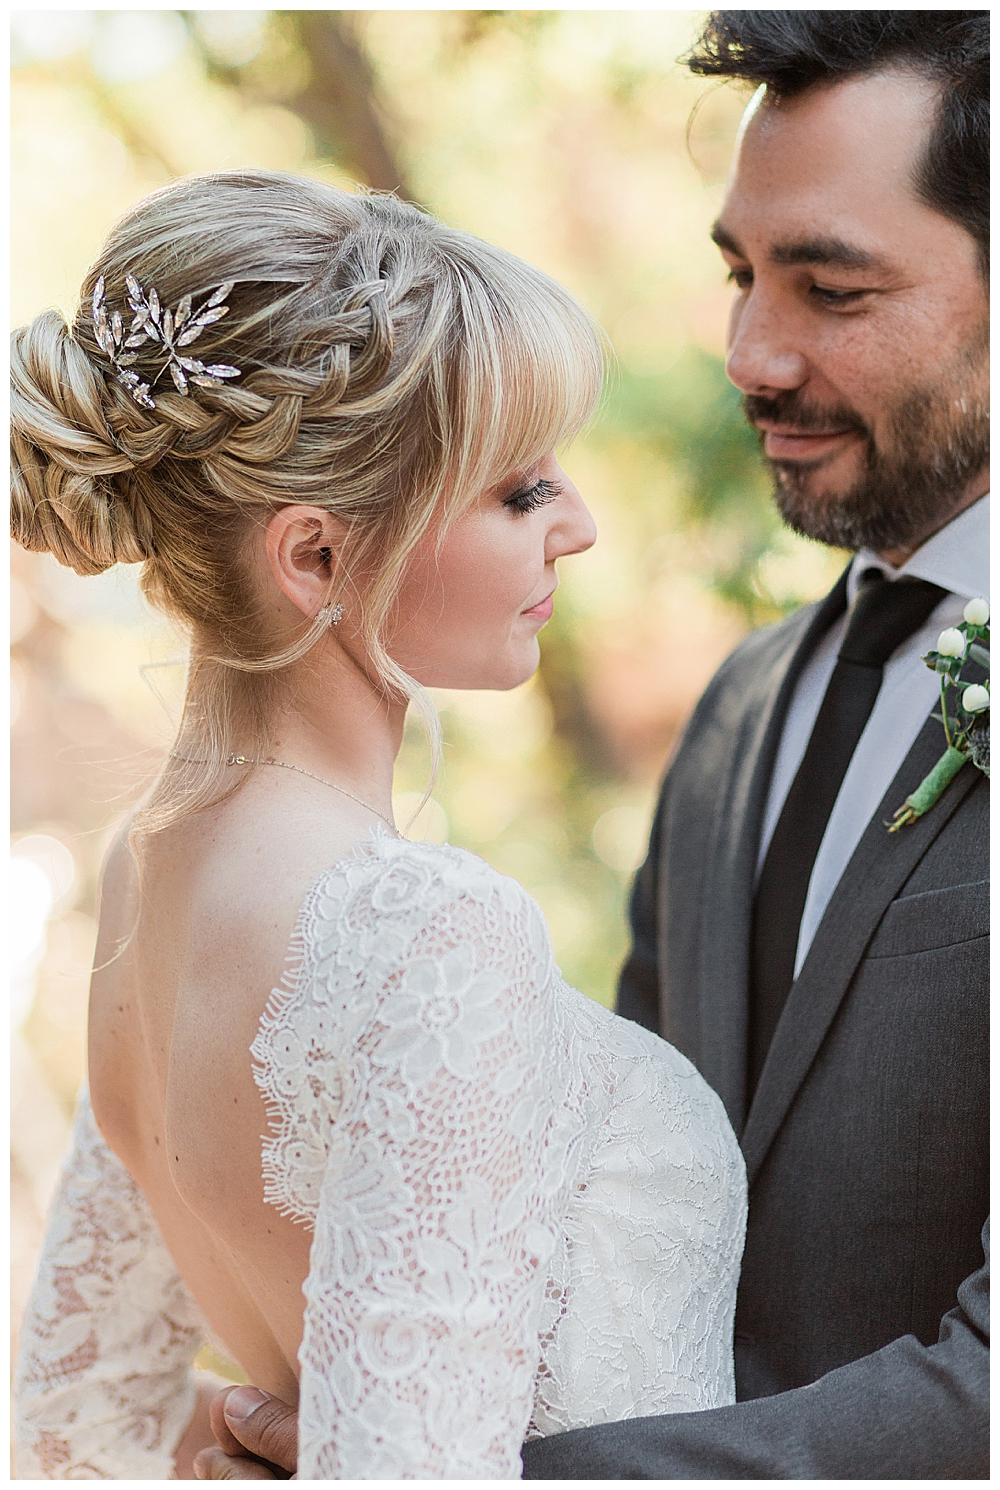 braid-bridal-updo